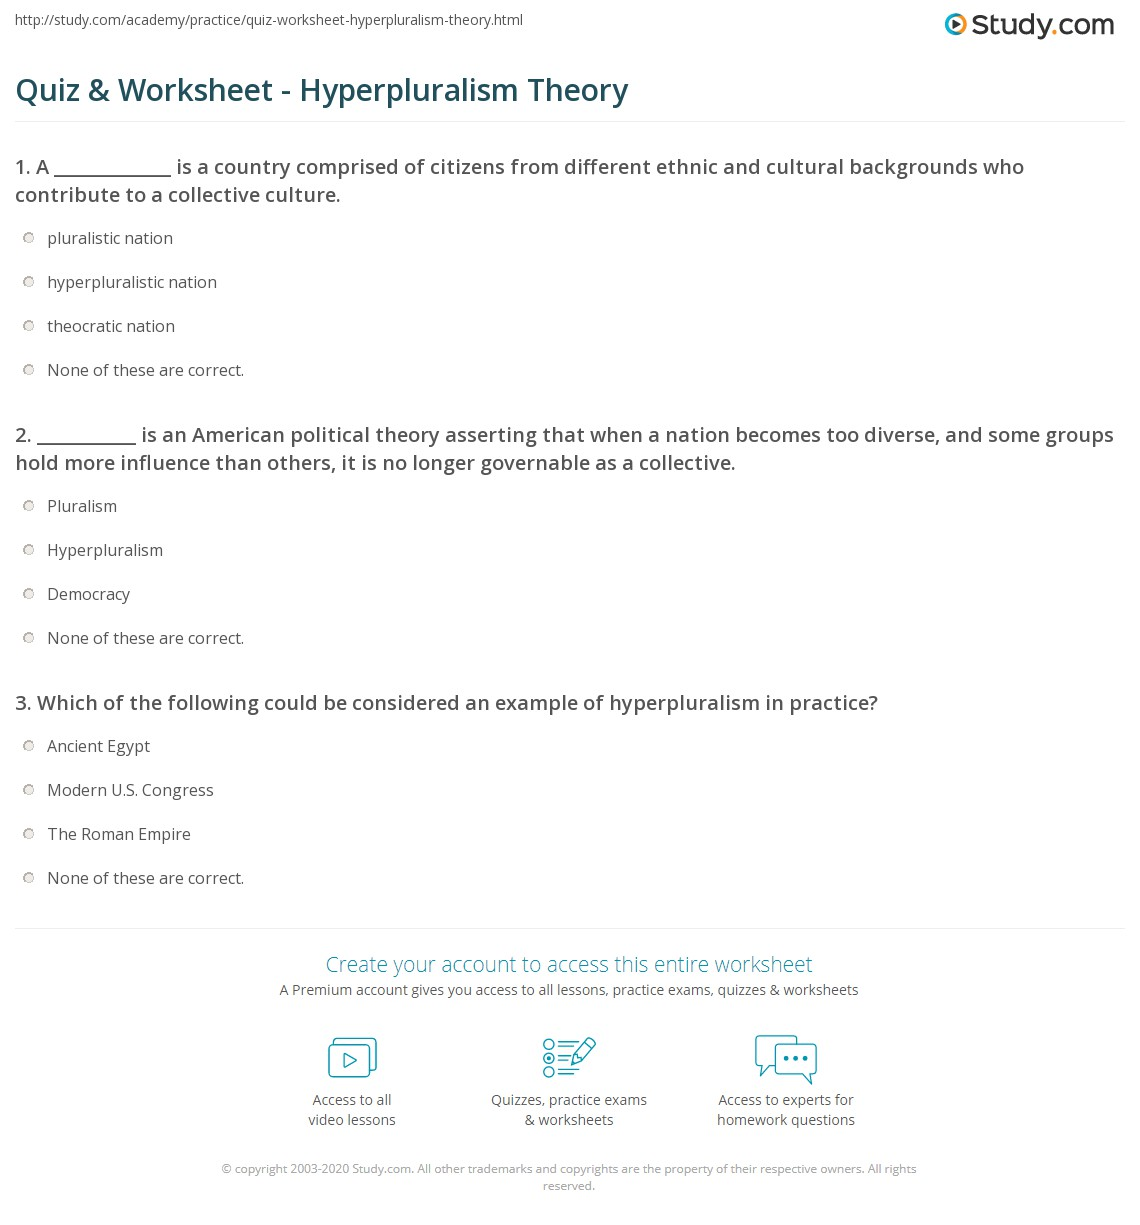 what is the hyperpluralist theory